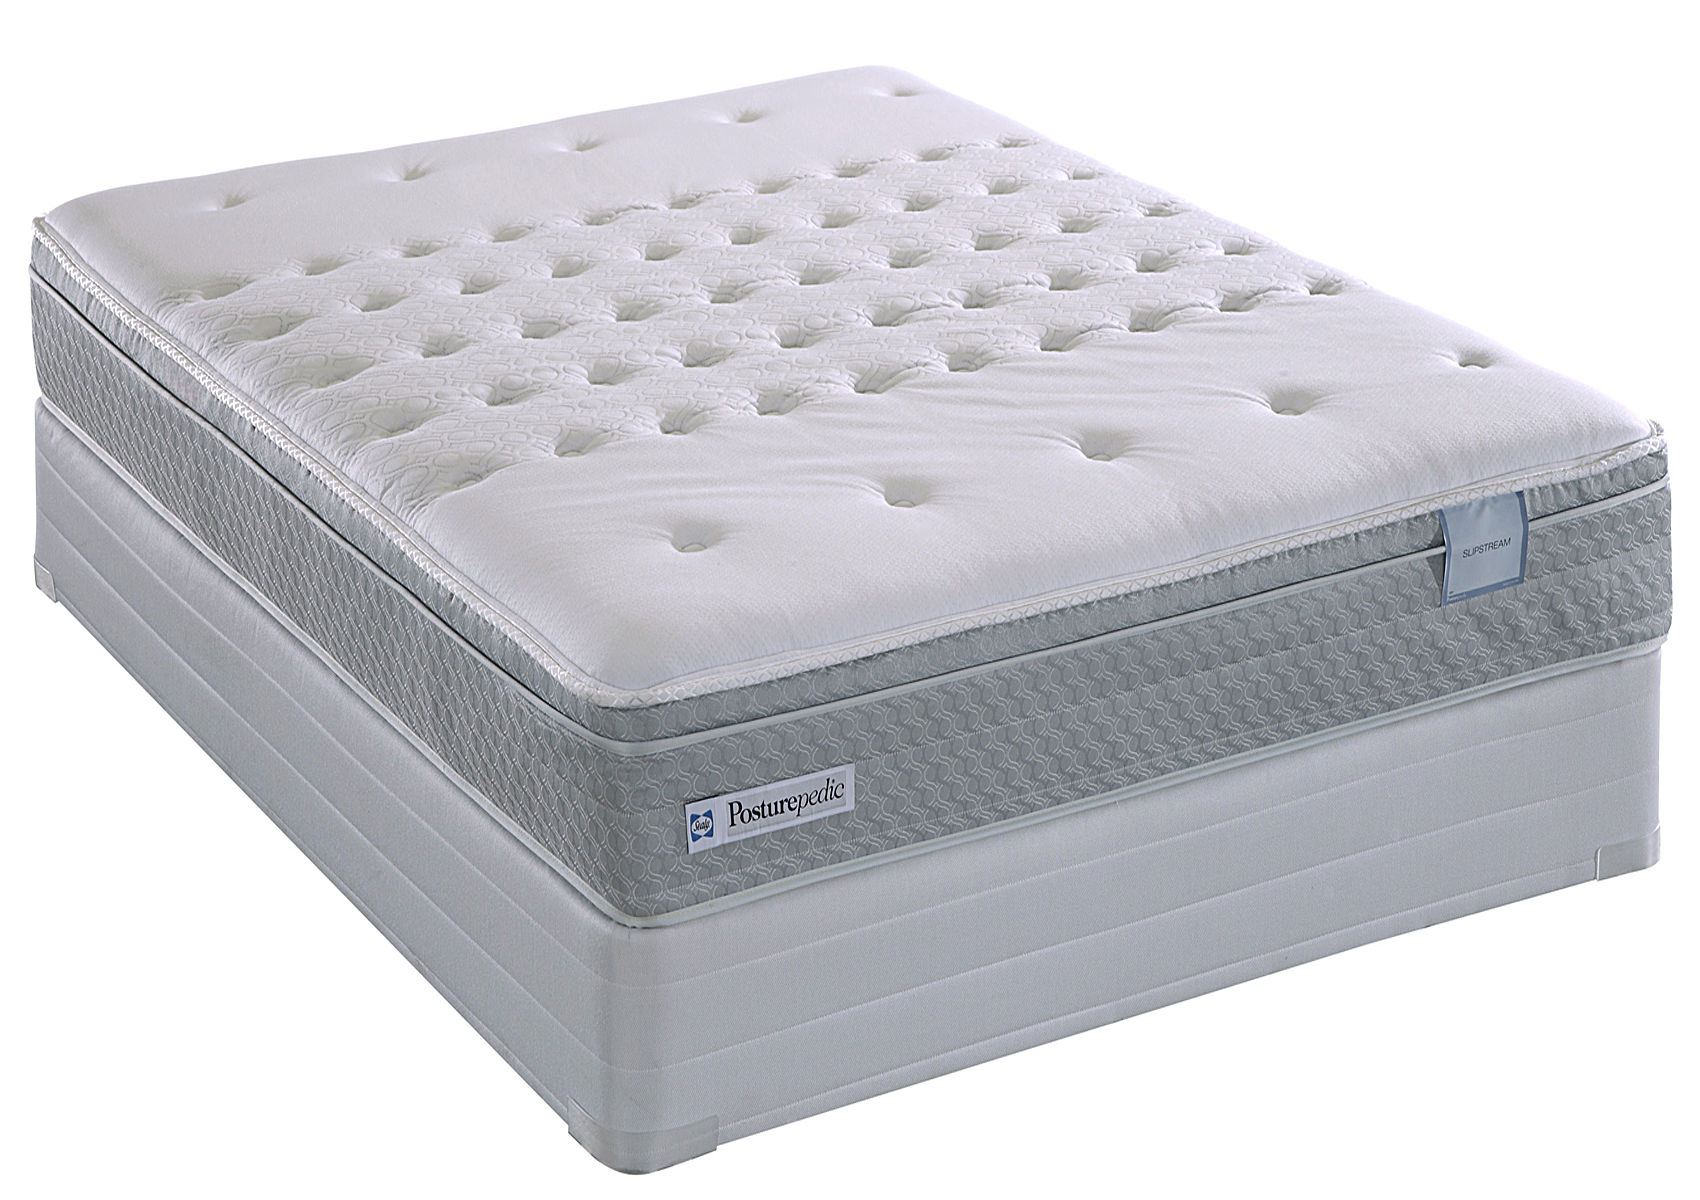 Sealy mattresses bring a history of innovation and research-